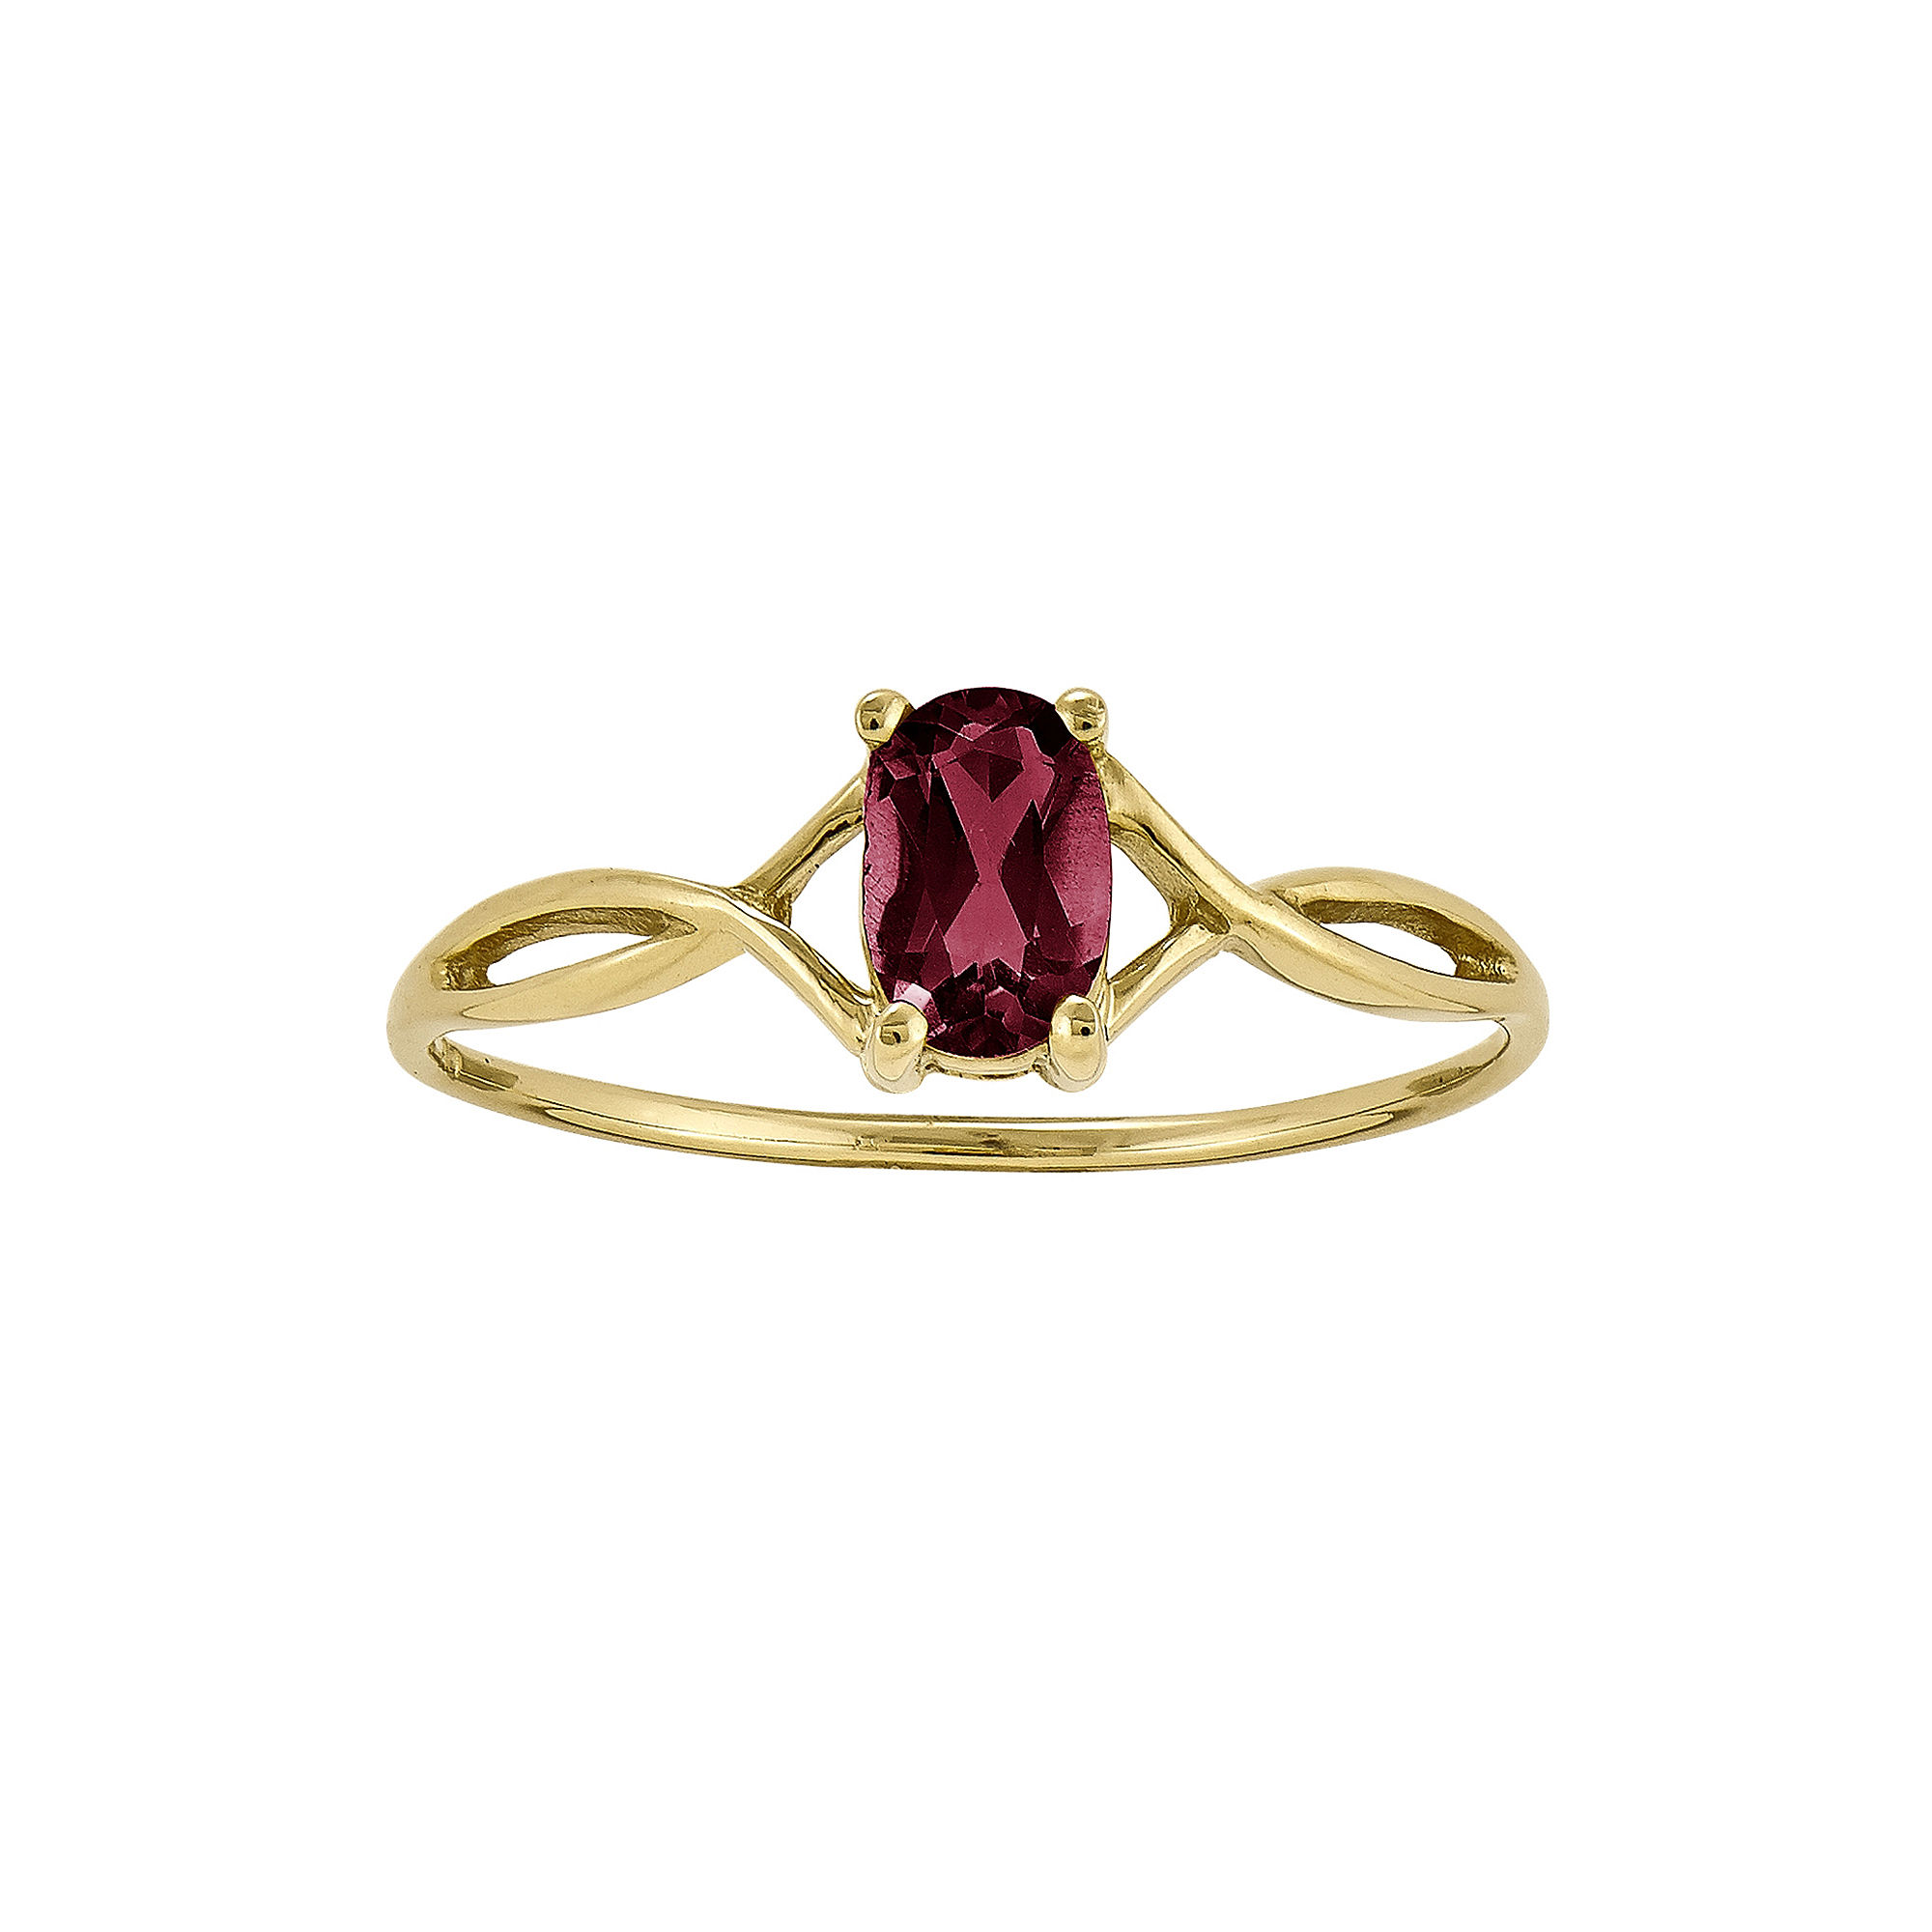 Lead Glass-Filled Ruby 14K Yellow Gold Birthstone Ring